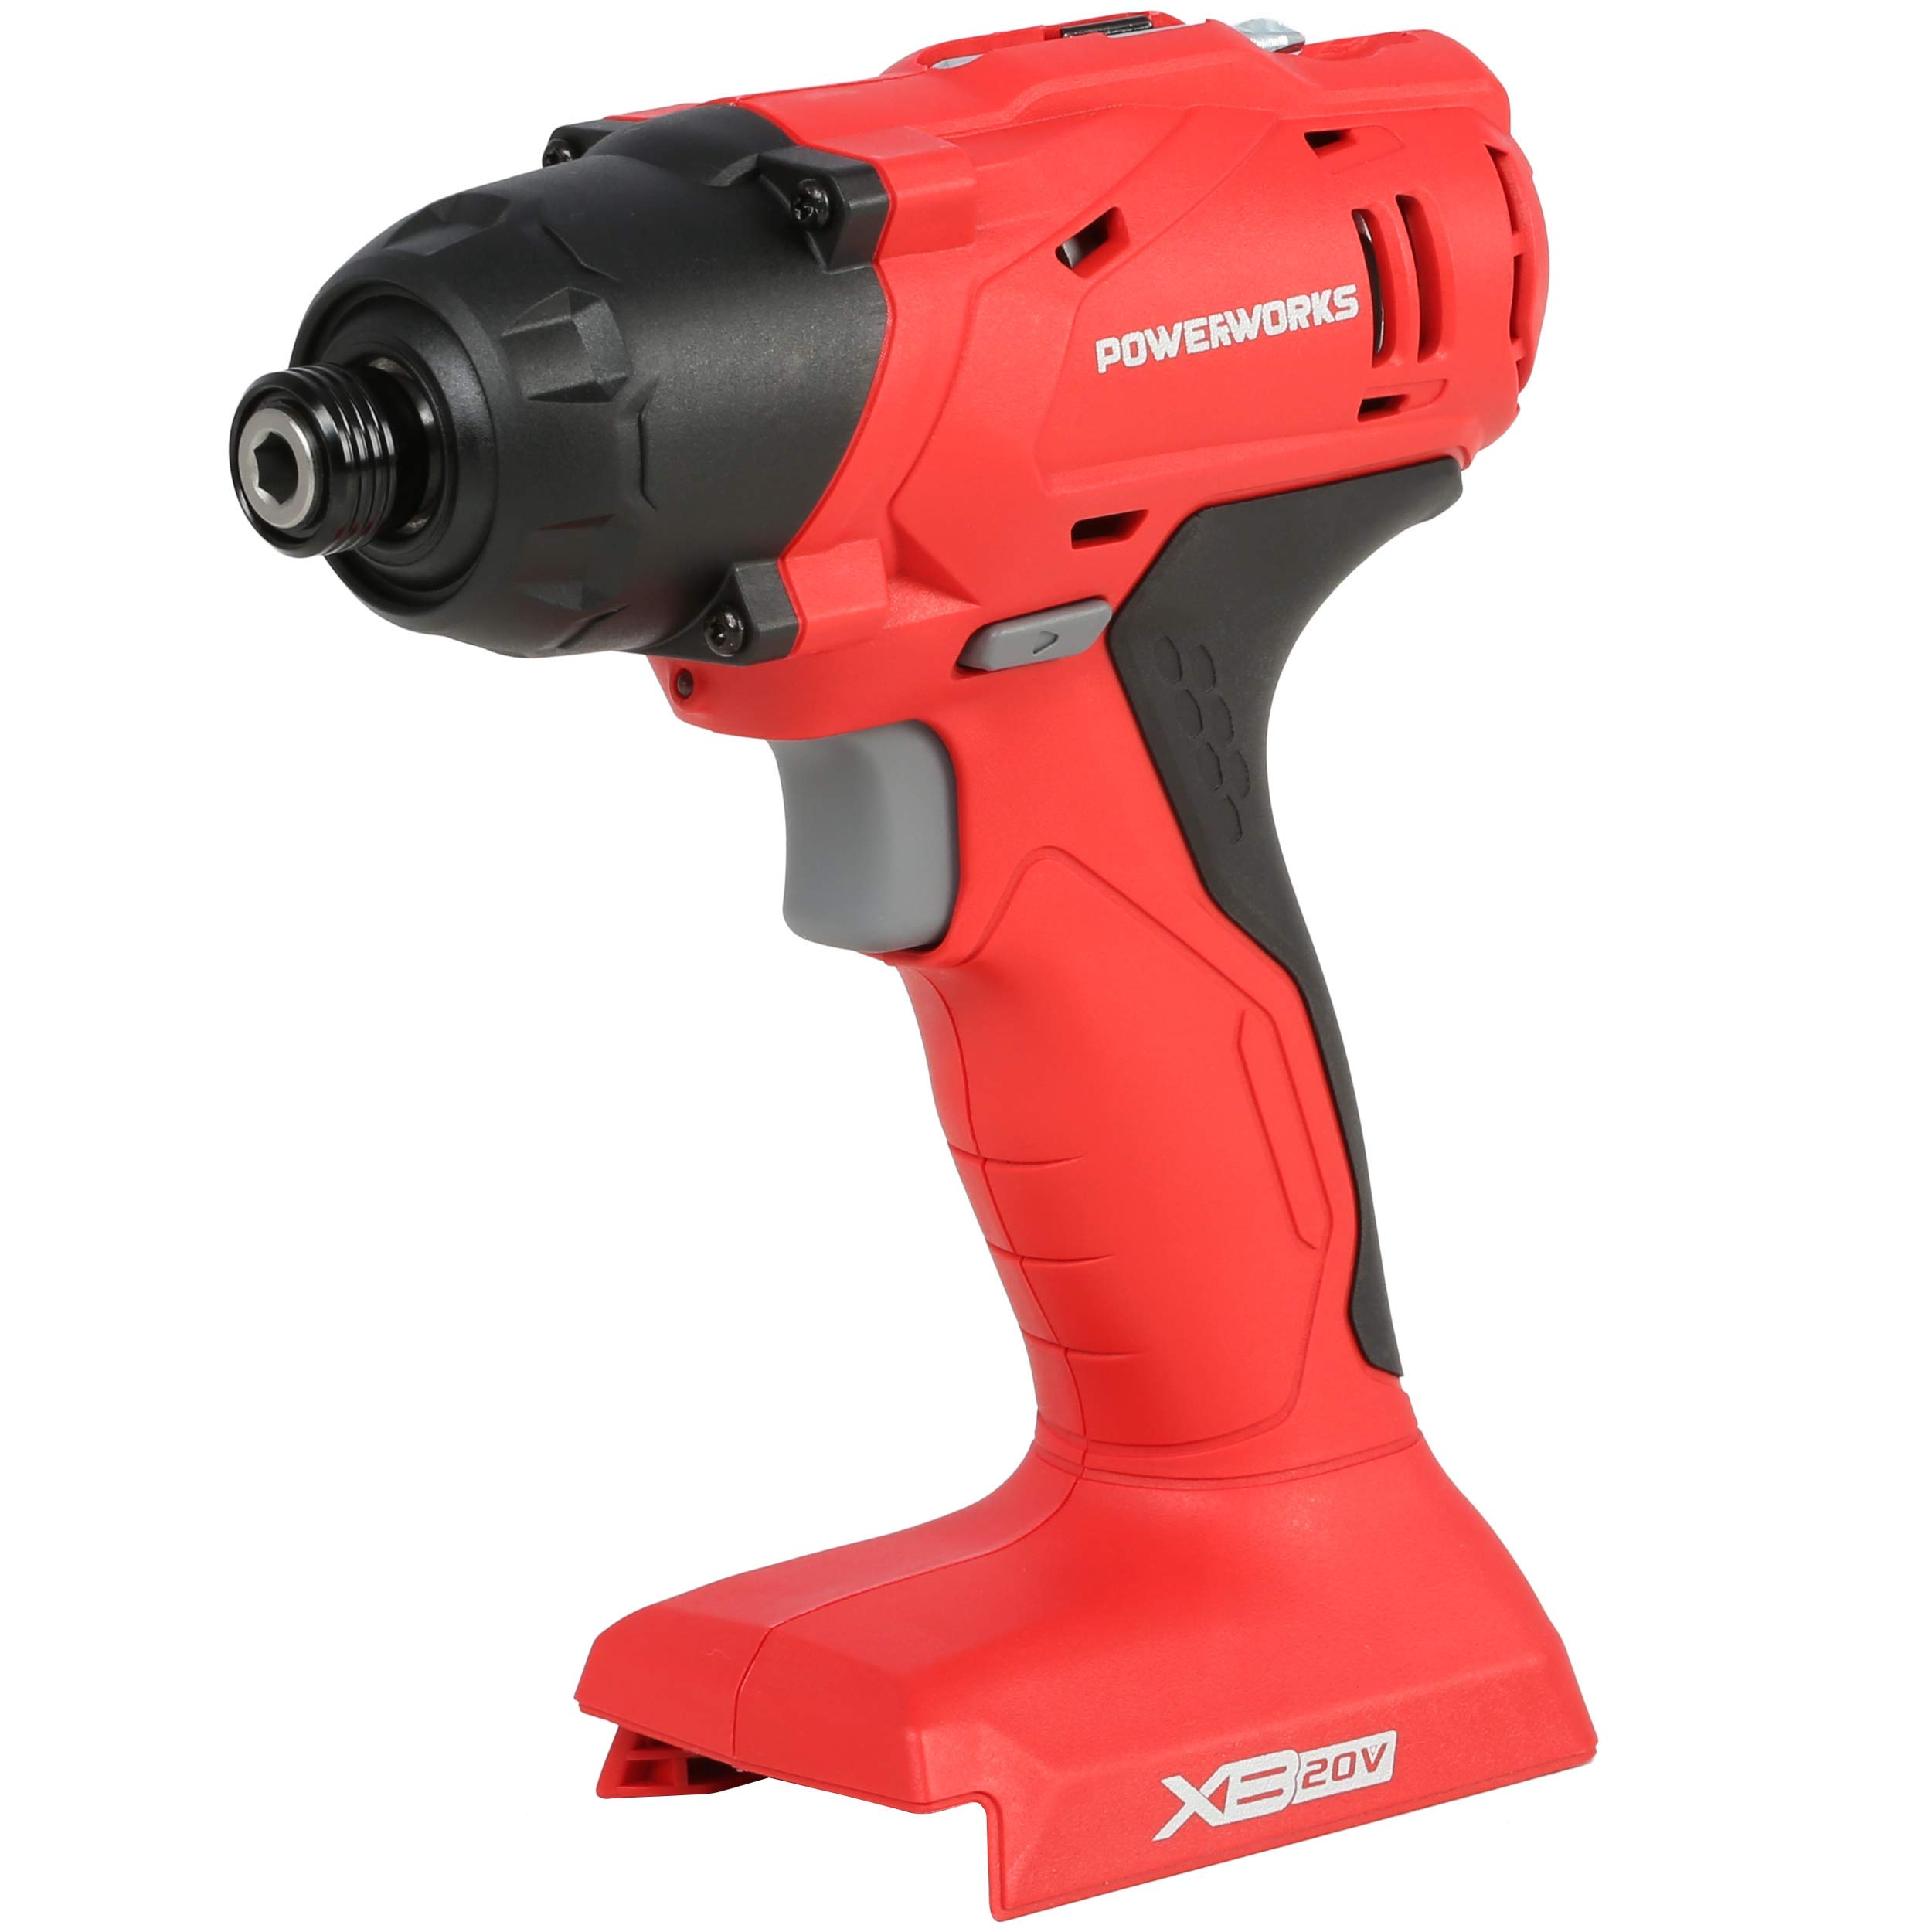 POWERWORKS XB 20V Cordless Impact Driver, Battery and Charger Not Included ISG303